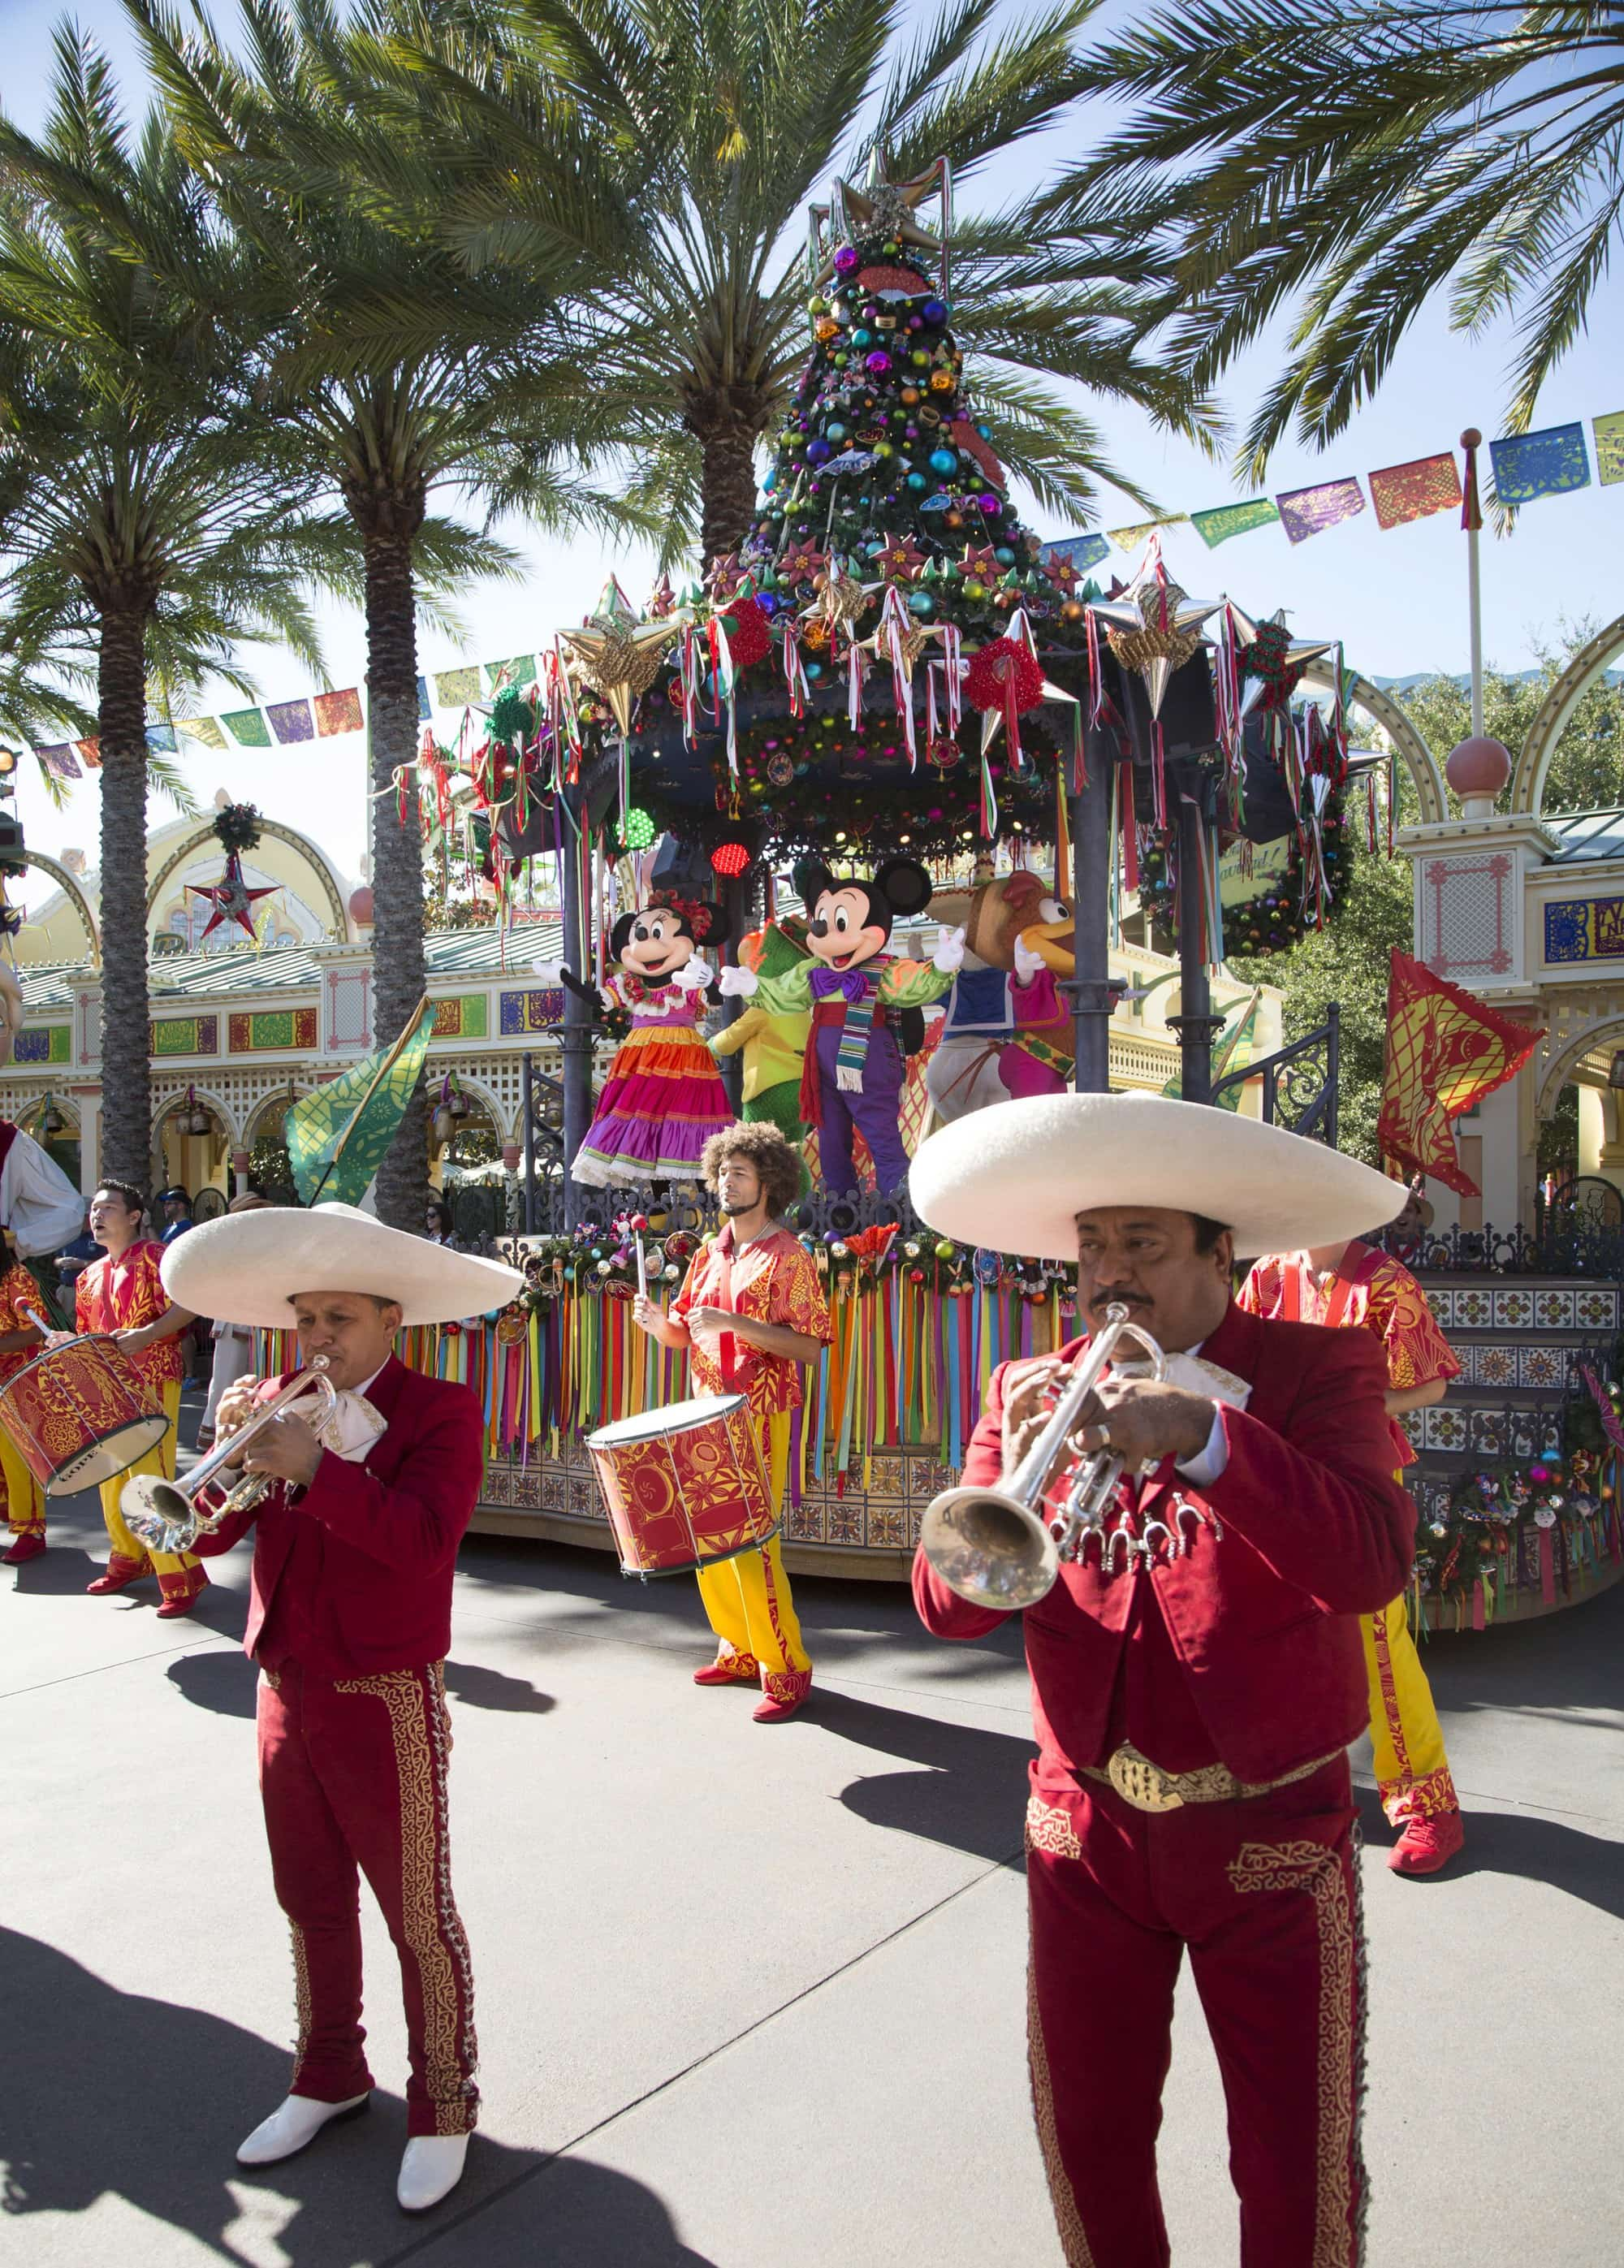 Special parades and concerts are included at no additional charge at Disneyland during the holidays